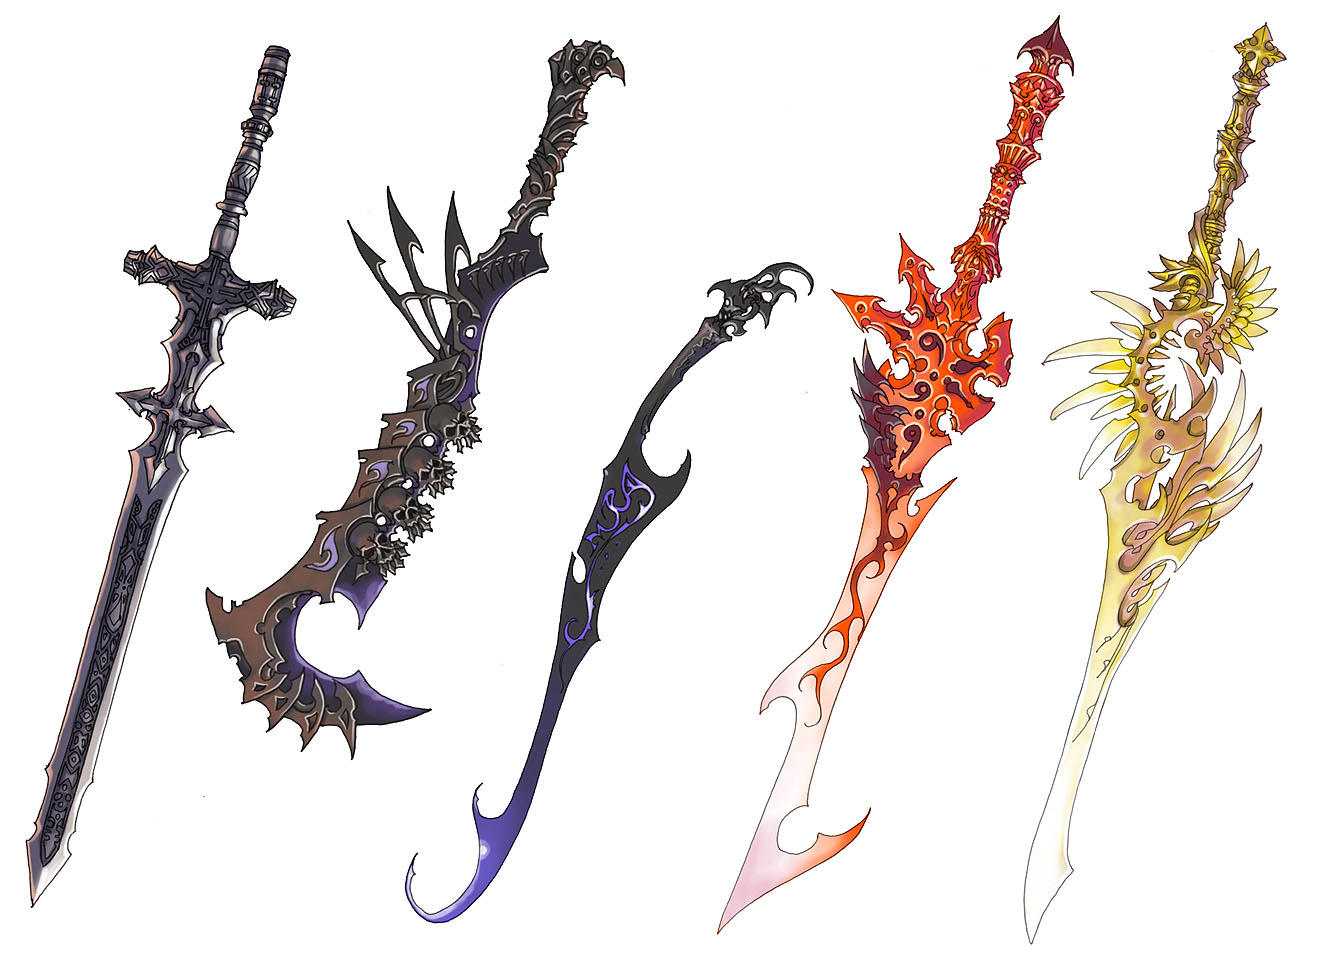 sword designs by Wen-M on DeviantArt